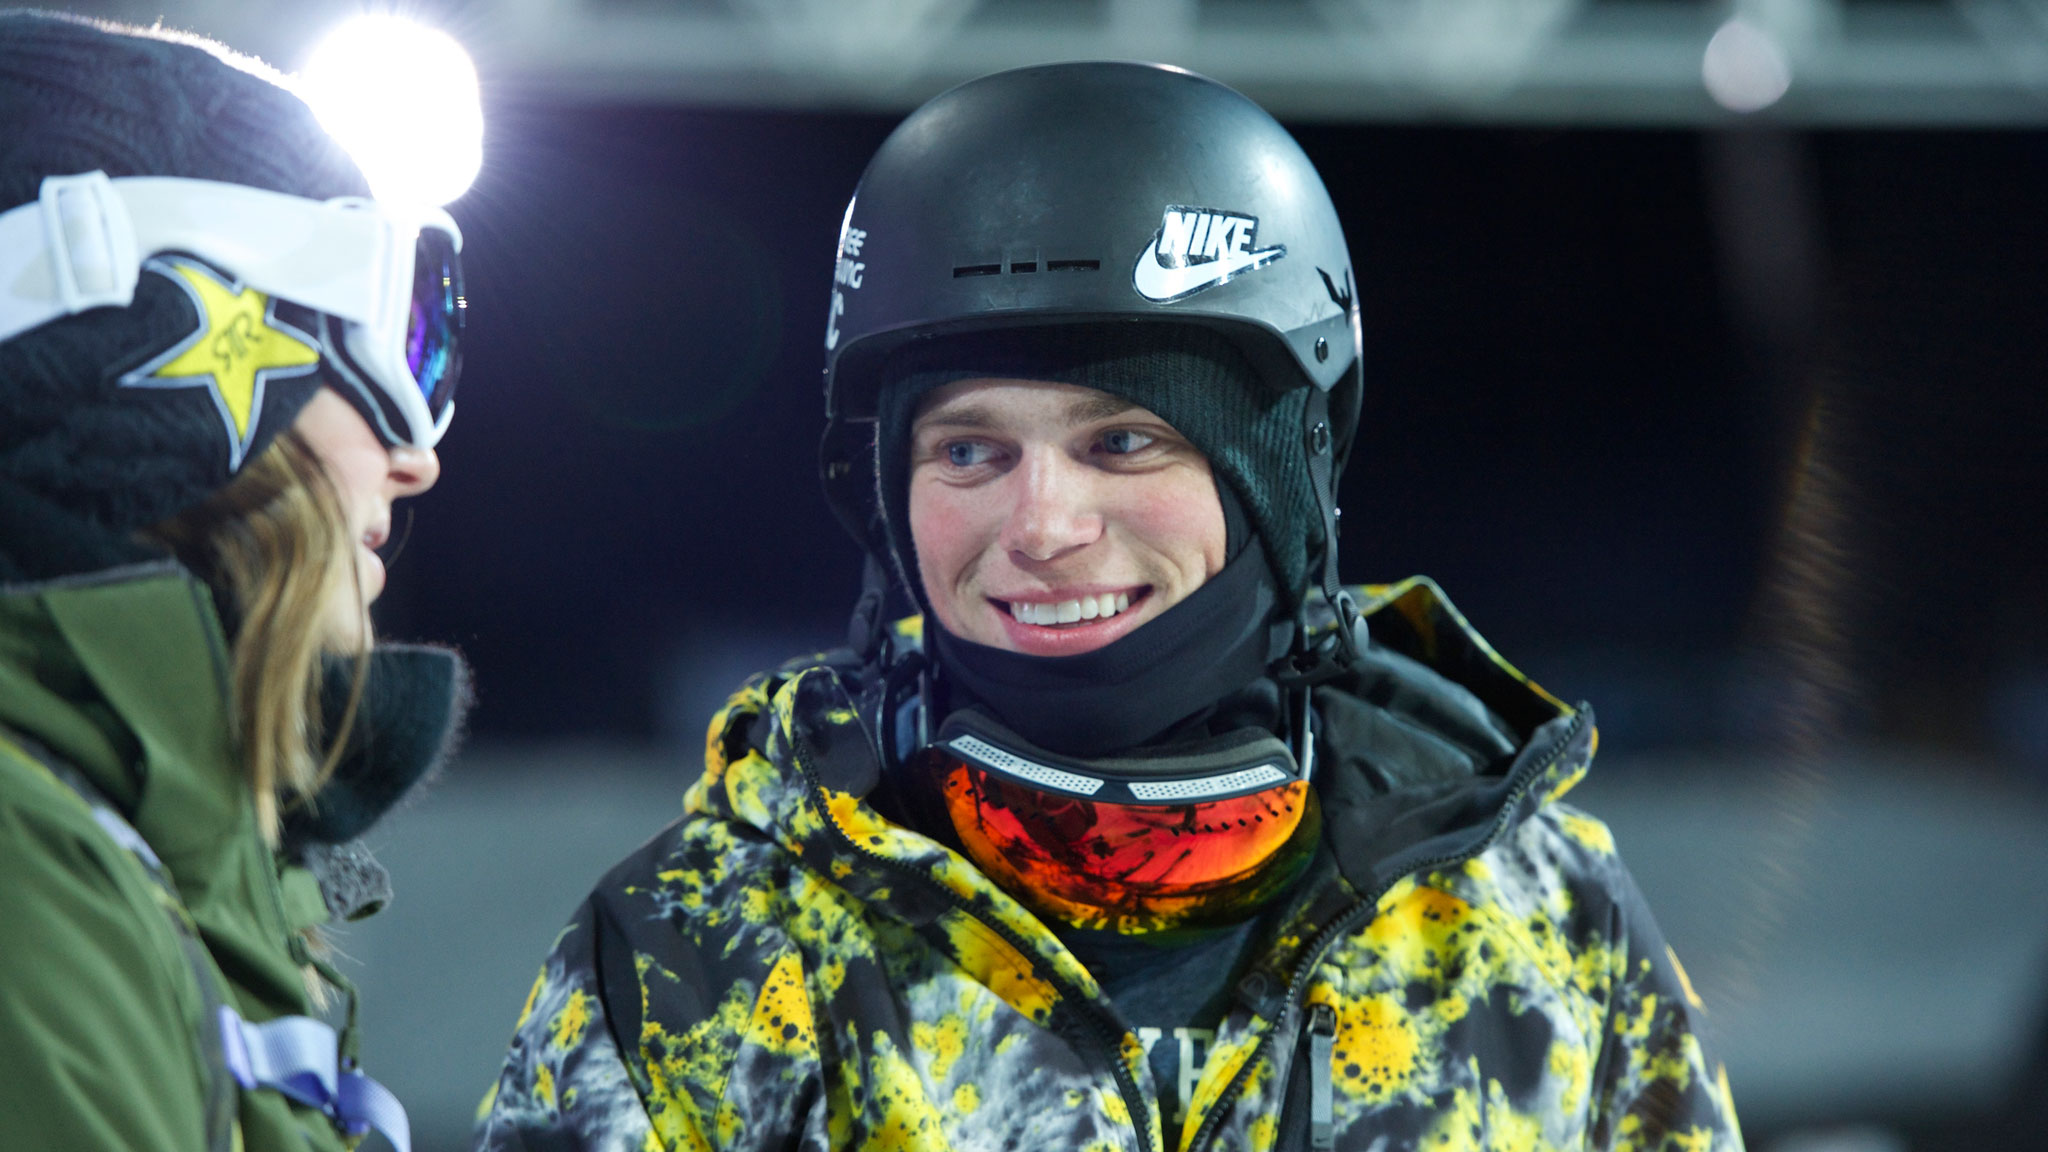 I want to come out really strong next year, says Gus Kenworthy.